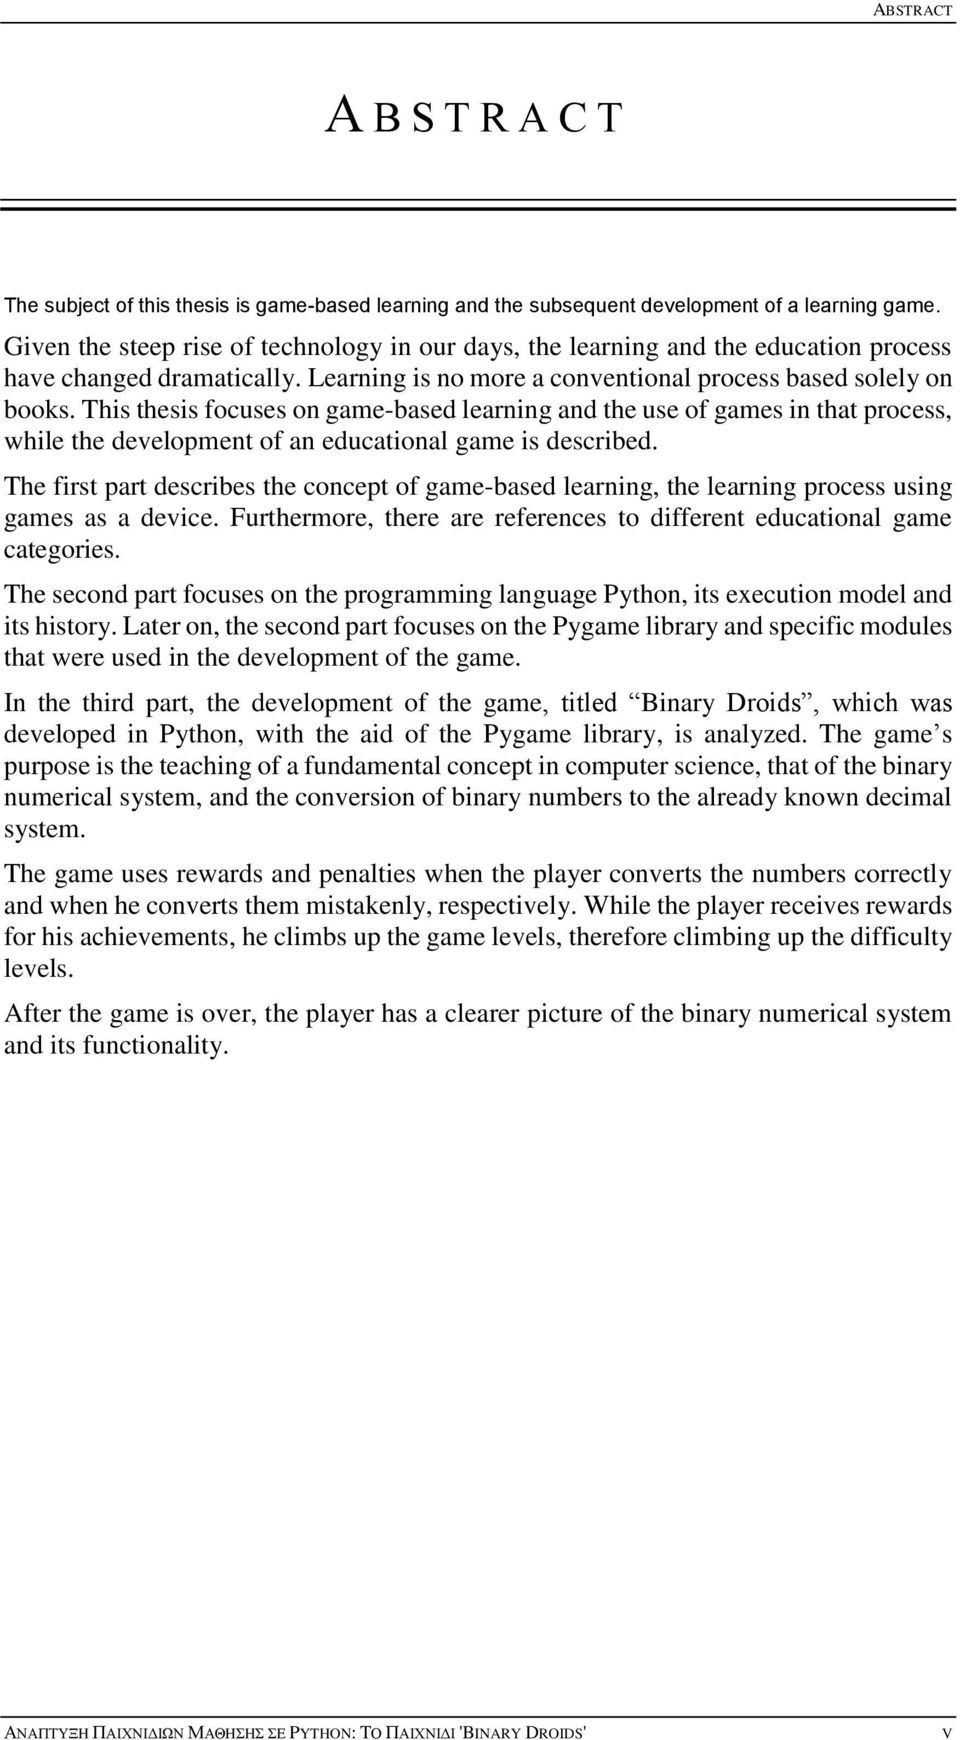 This thesis focuses on game-based learning and the use of games in that process, while the development of an educational game is described.